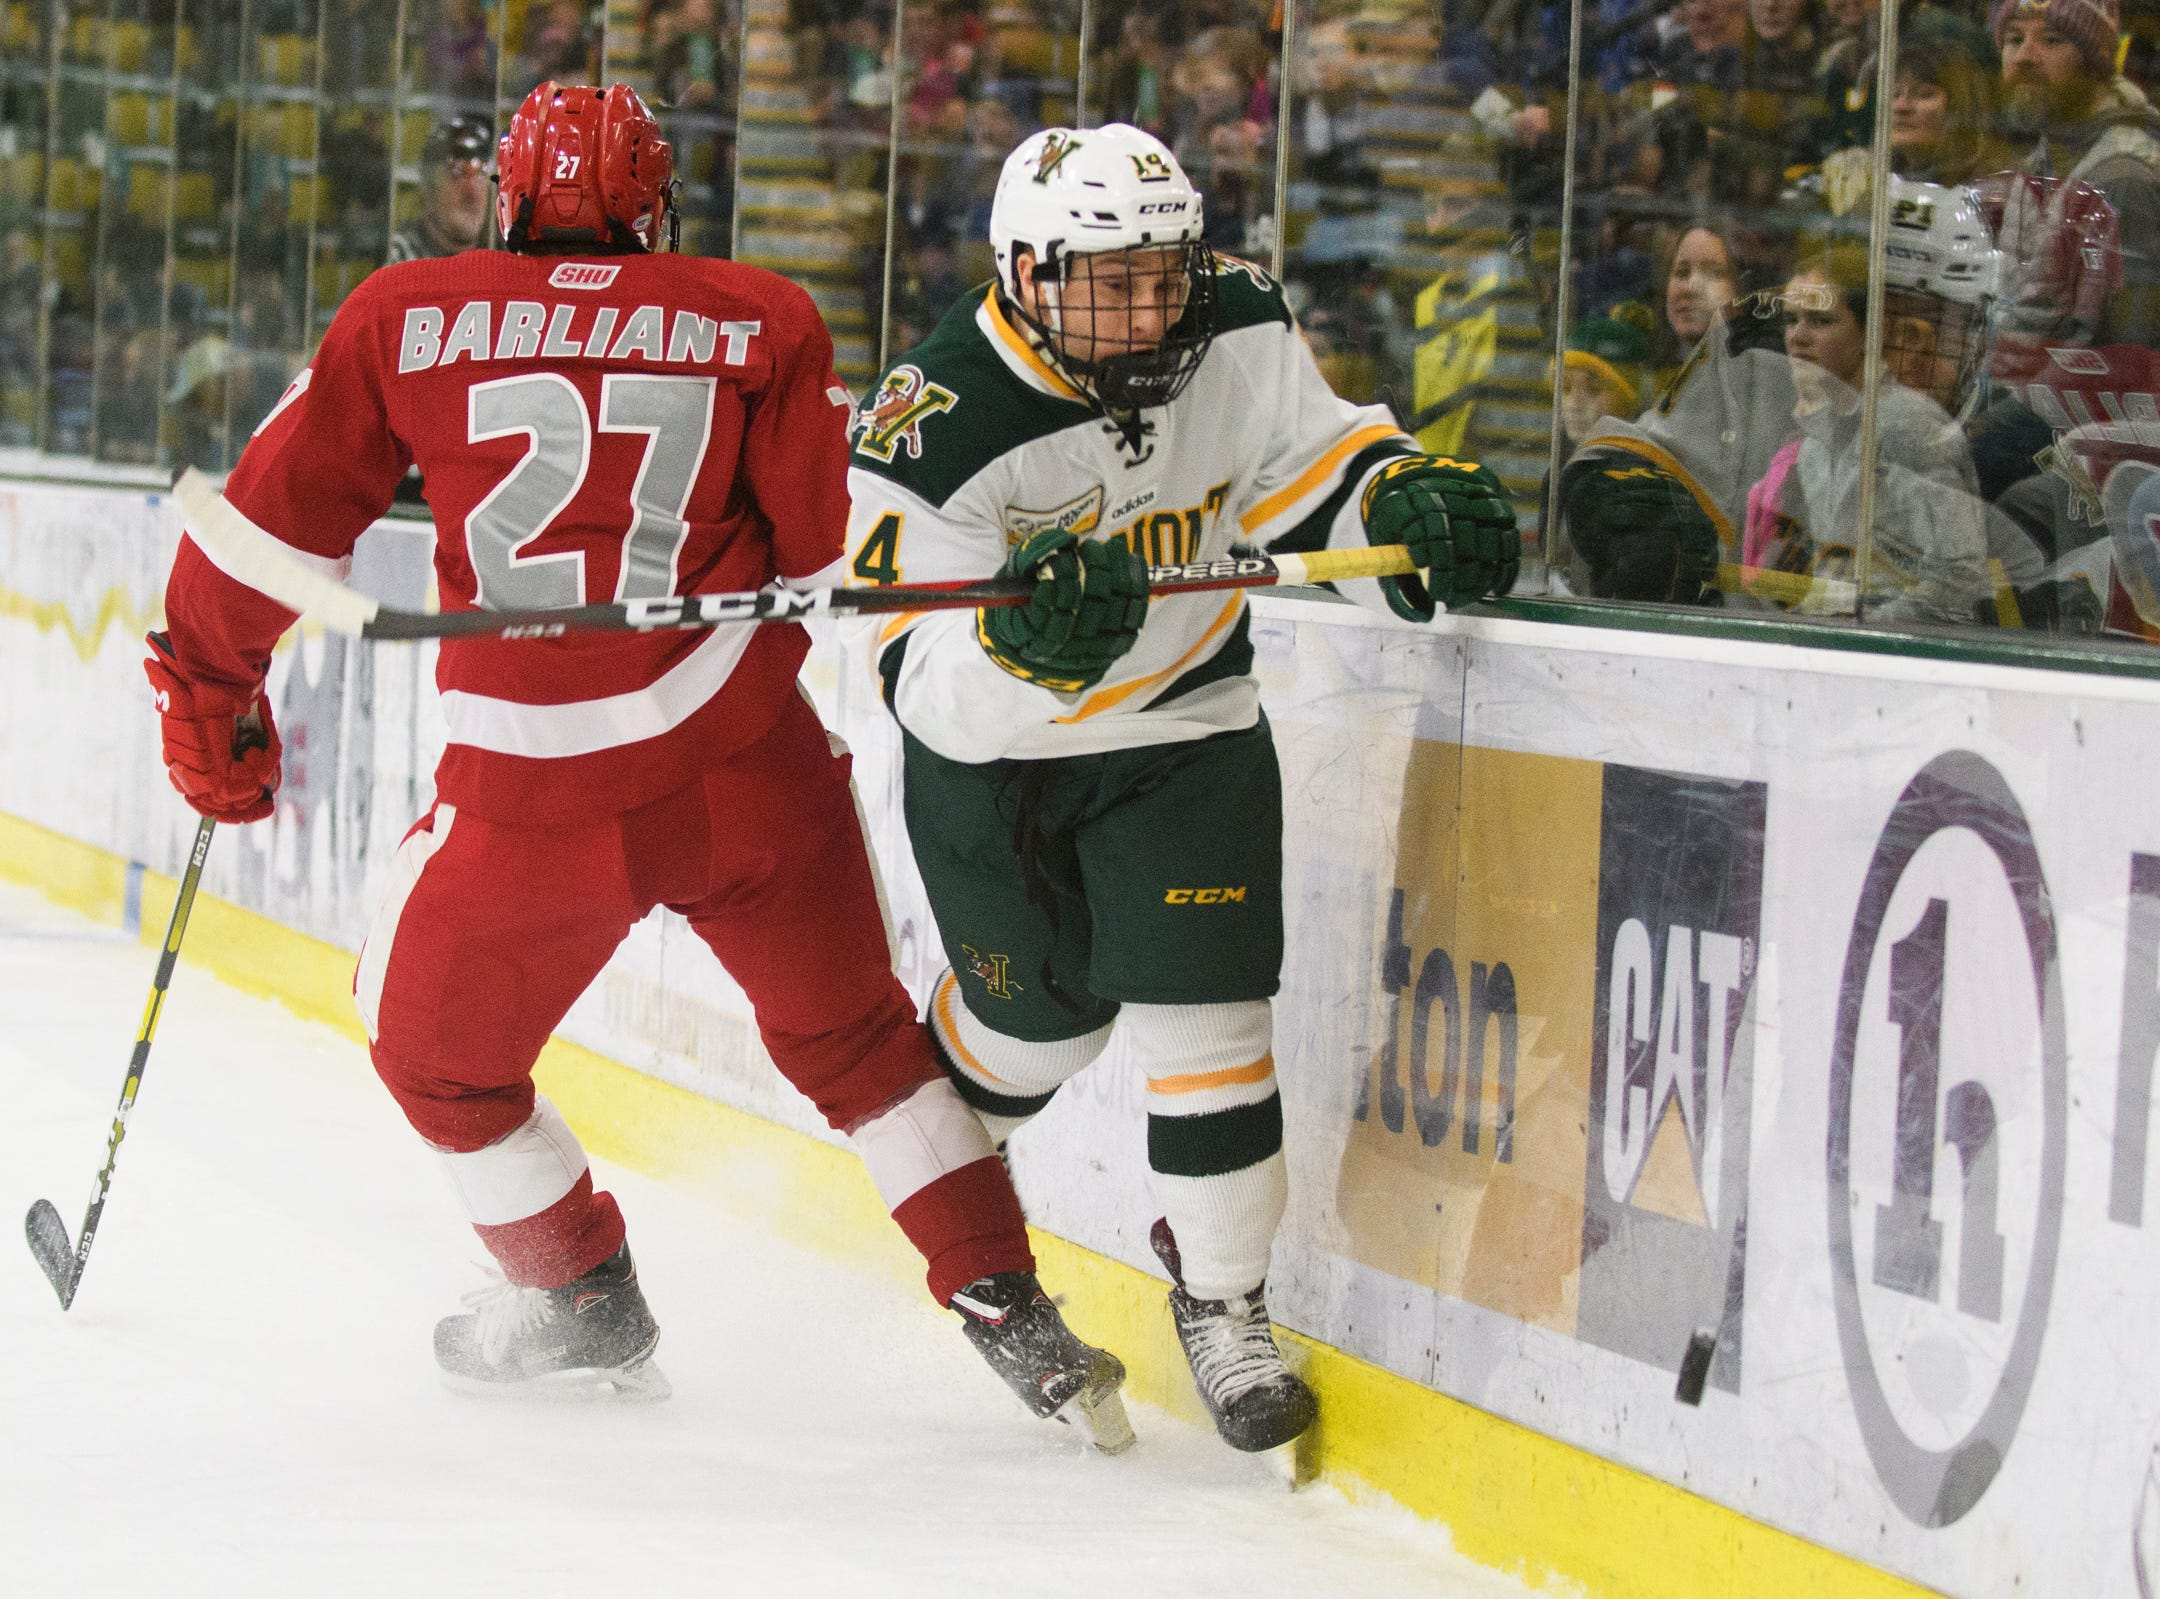 Vermont forward Ace Cowans (14) battles for the puck along the boards with Sacred Heart's Jackson Barliant (27) during the men's hockey game between the Sacred Heart Pioneers and the Vermont Catamounts at Gutterson Field House on Friday night January 4, 2019 in Burlington.